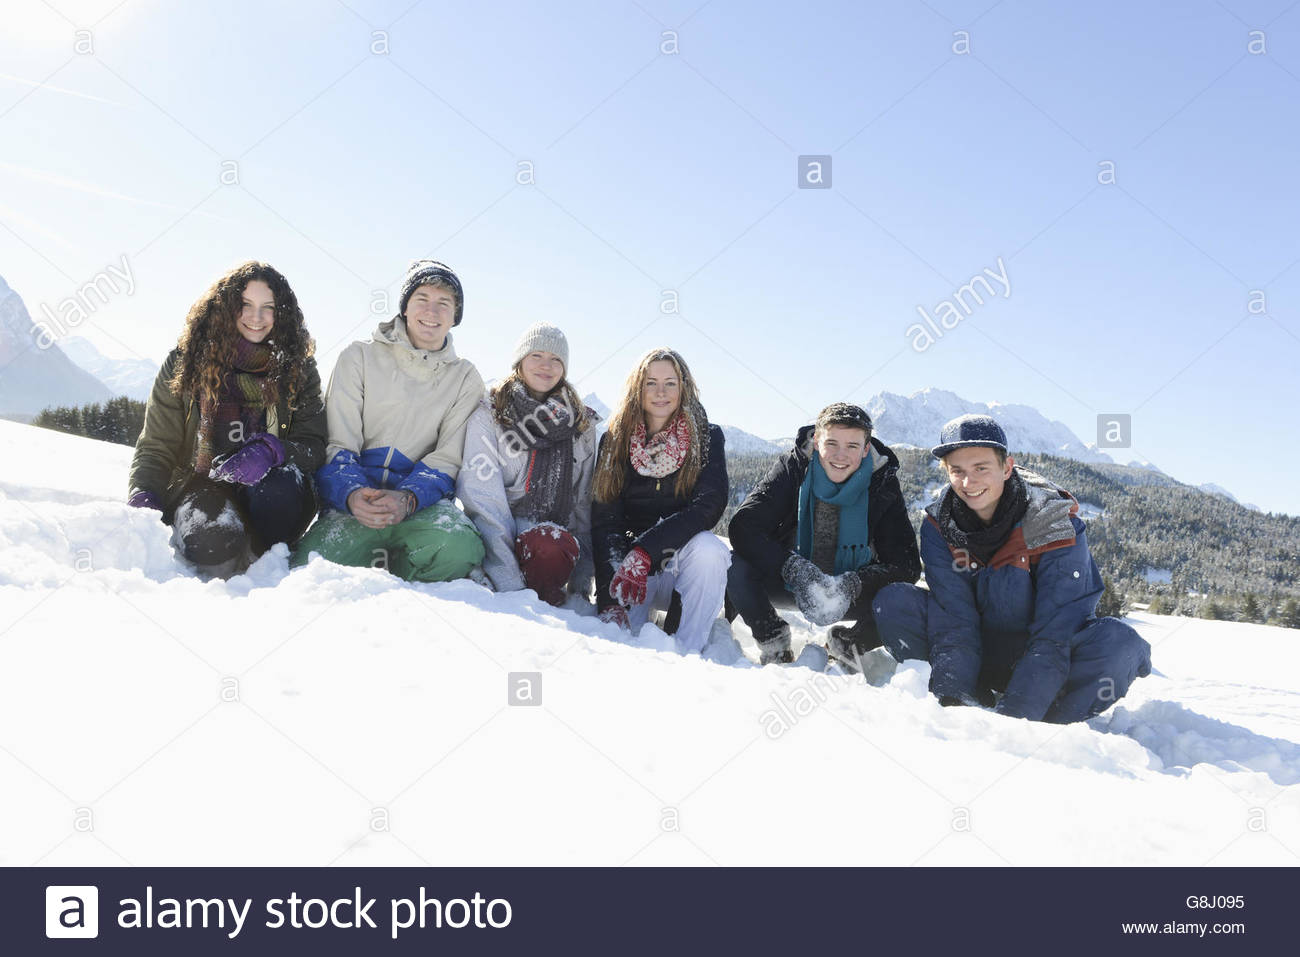 Portrait of young friends crouching on snow - Stock Image